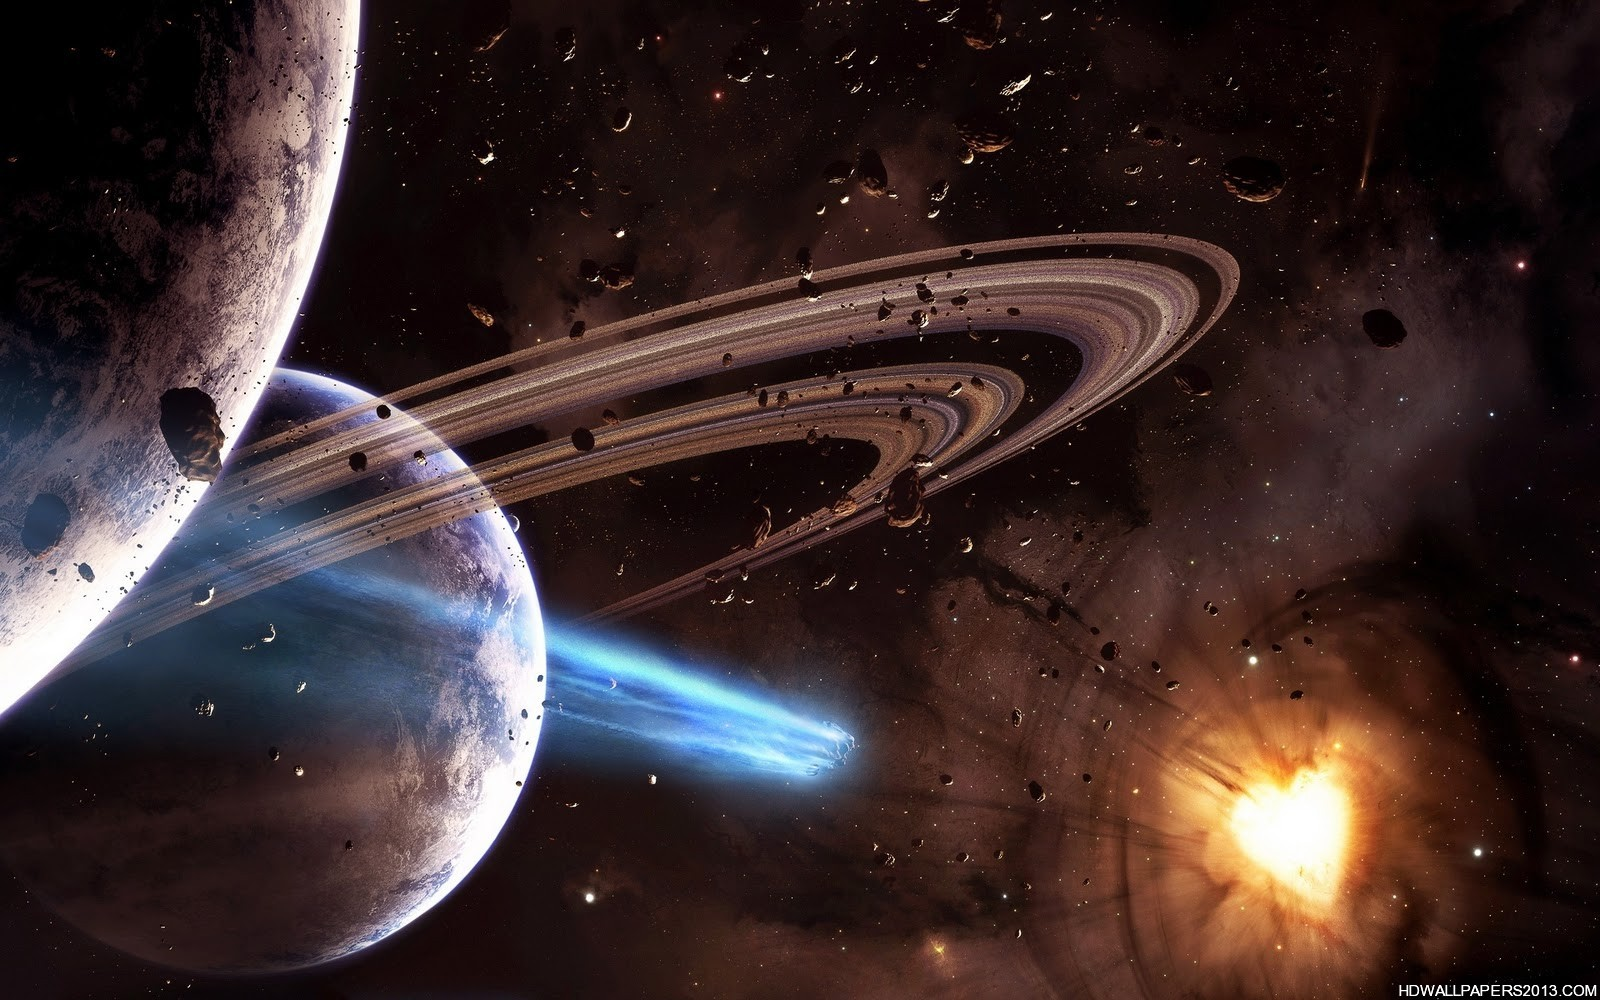 Space hd wallpapers hd wallpapers space hd wallpapers hd